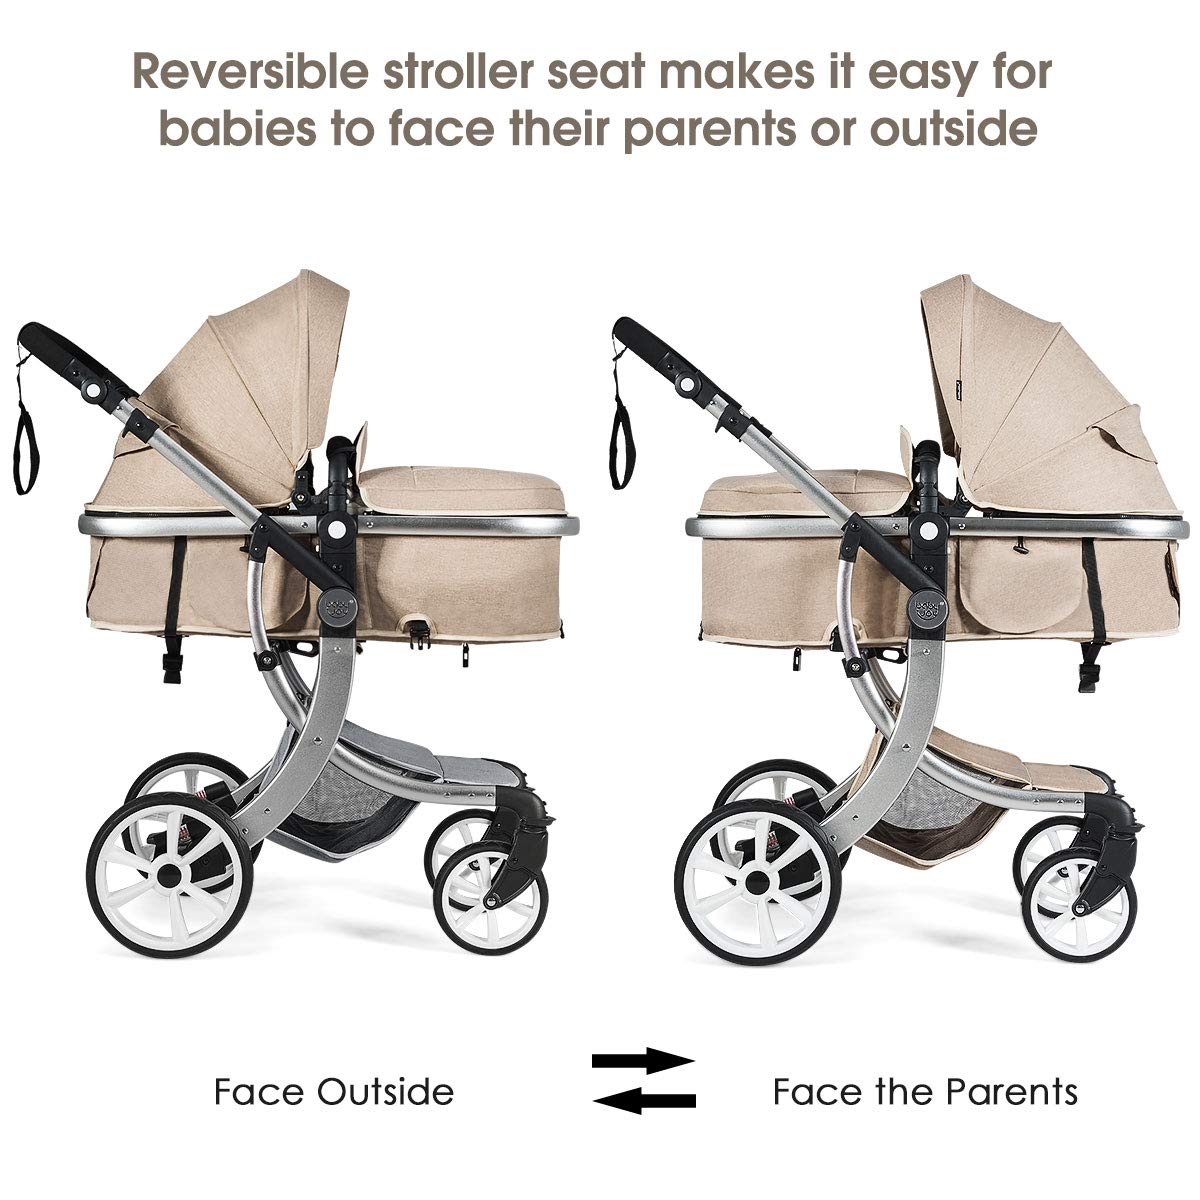 BABY JOY Baby Stroller, 2-in-1 Convertible Bassinet Sleeping Stroller, Foldable Pram Carriage with 5-Point Harness, Including Rain Cover, Net, Cushion Pad, Foot Cover, Diaper Bag Beige